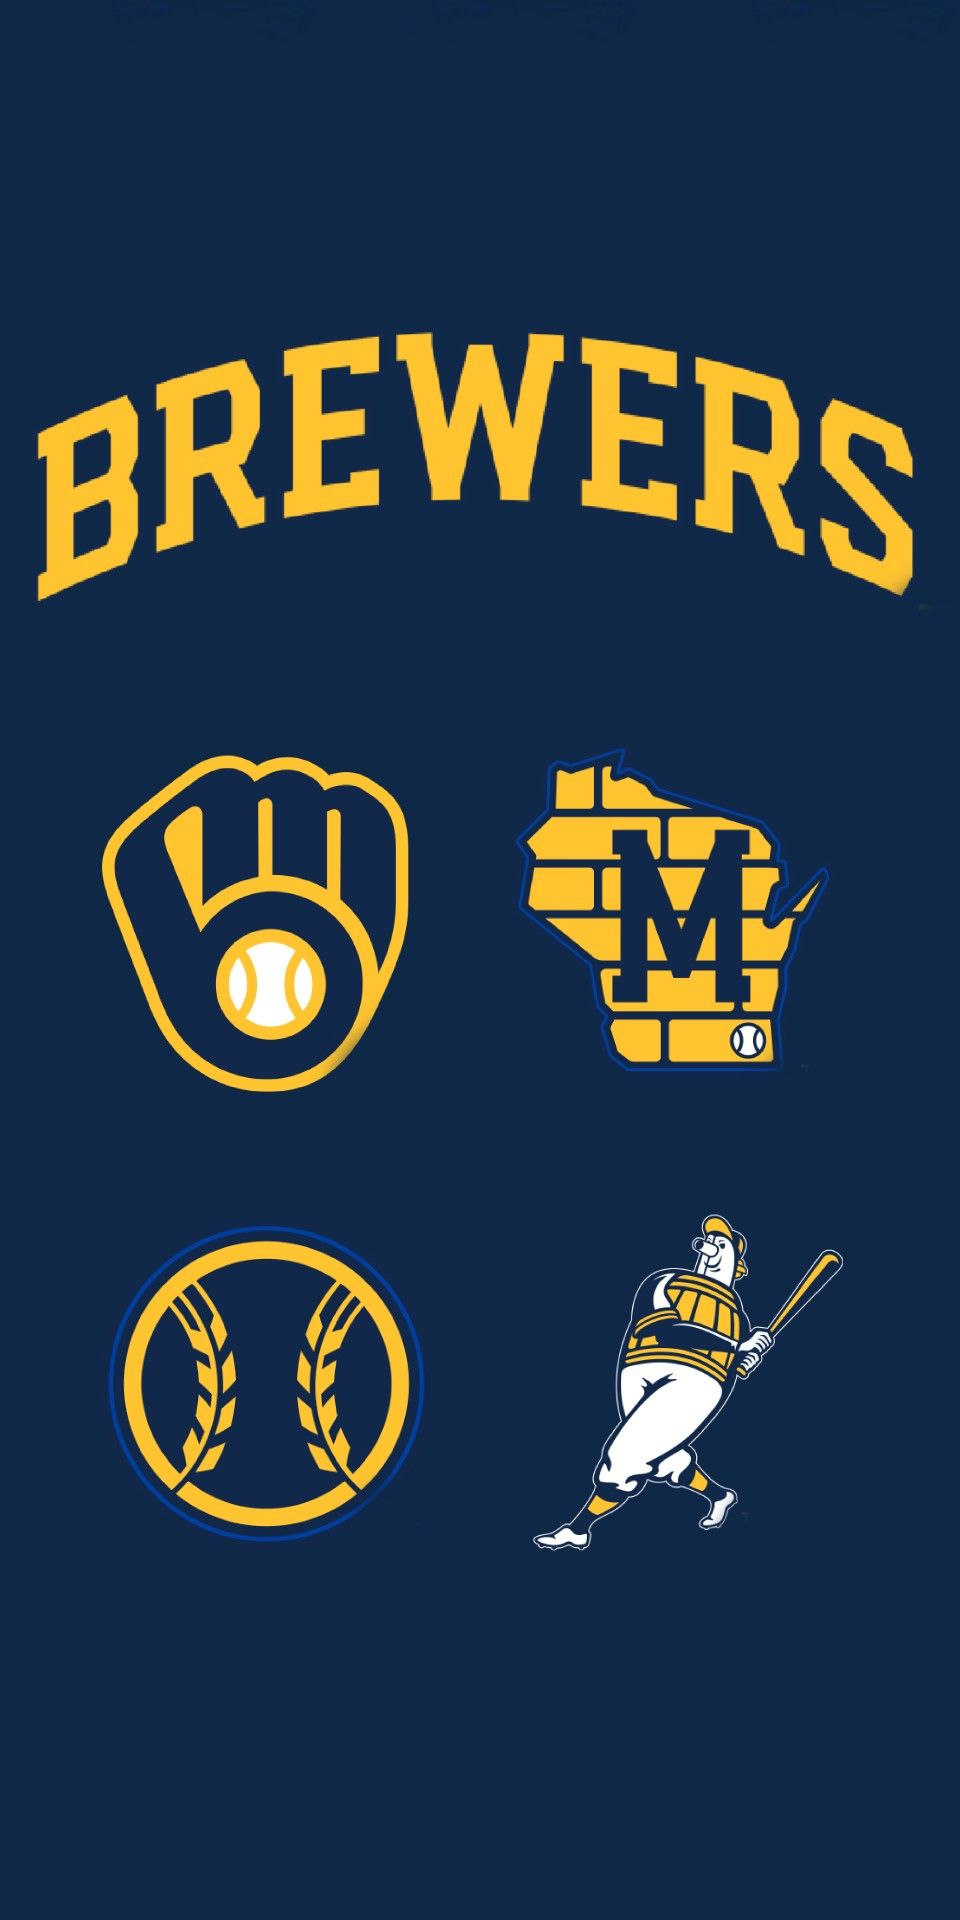 Pin On Brewers